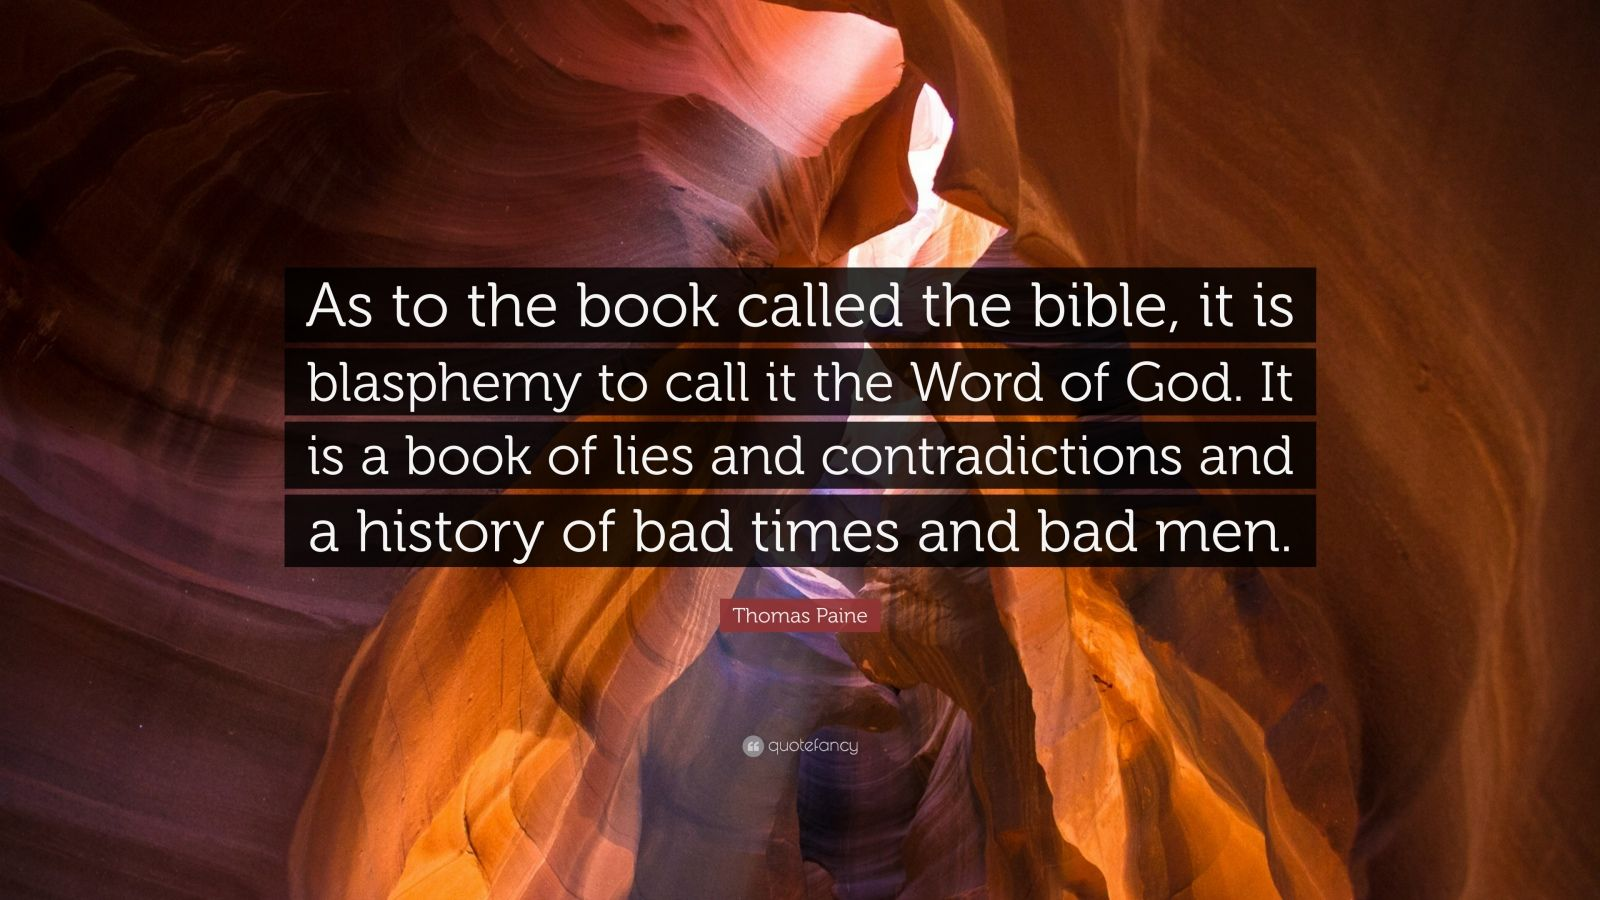 """Thomas Paine Quote: """"As to the book called the bible, it is blasphemy to call it the Word of God. It is a book of lies and contradictions and a history of bad times and bad men."""""""